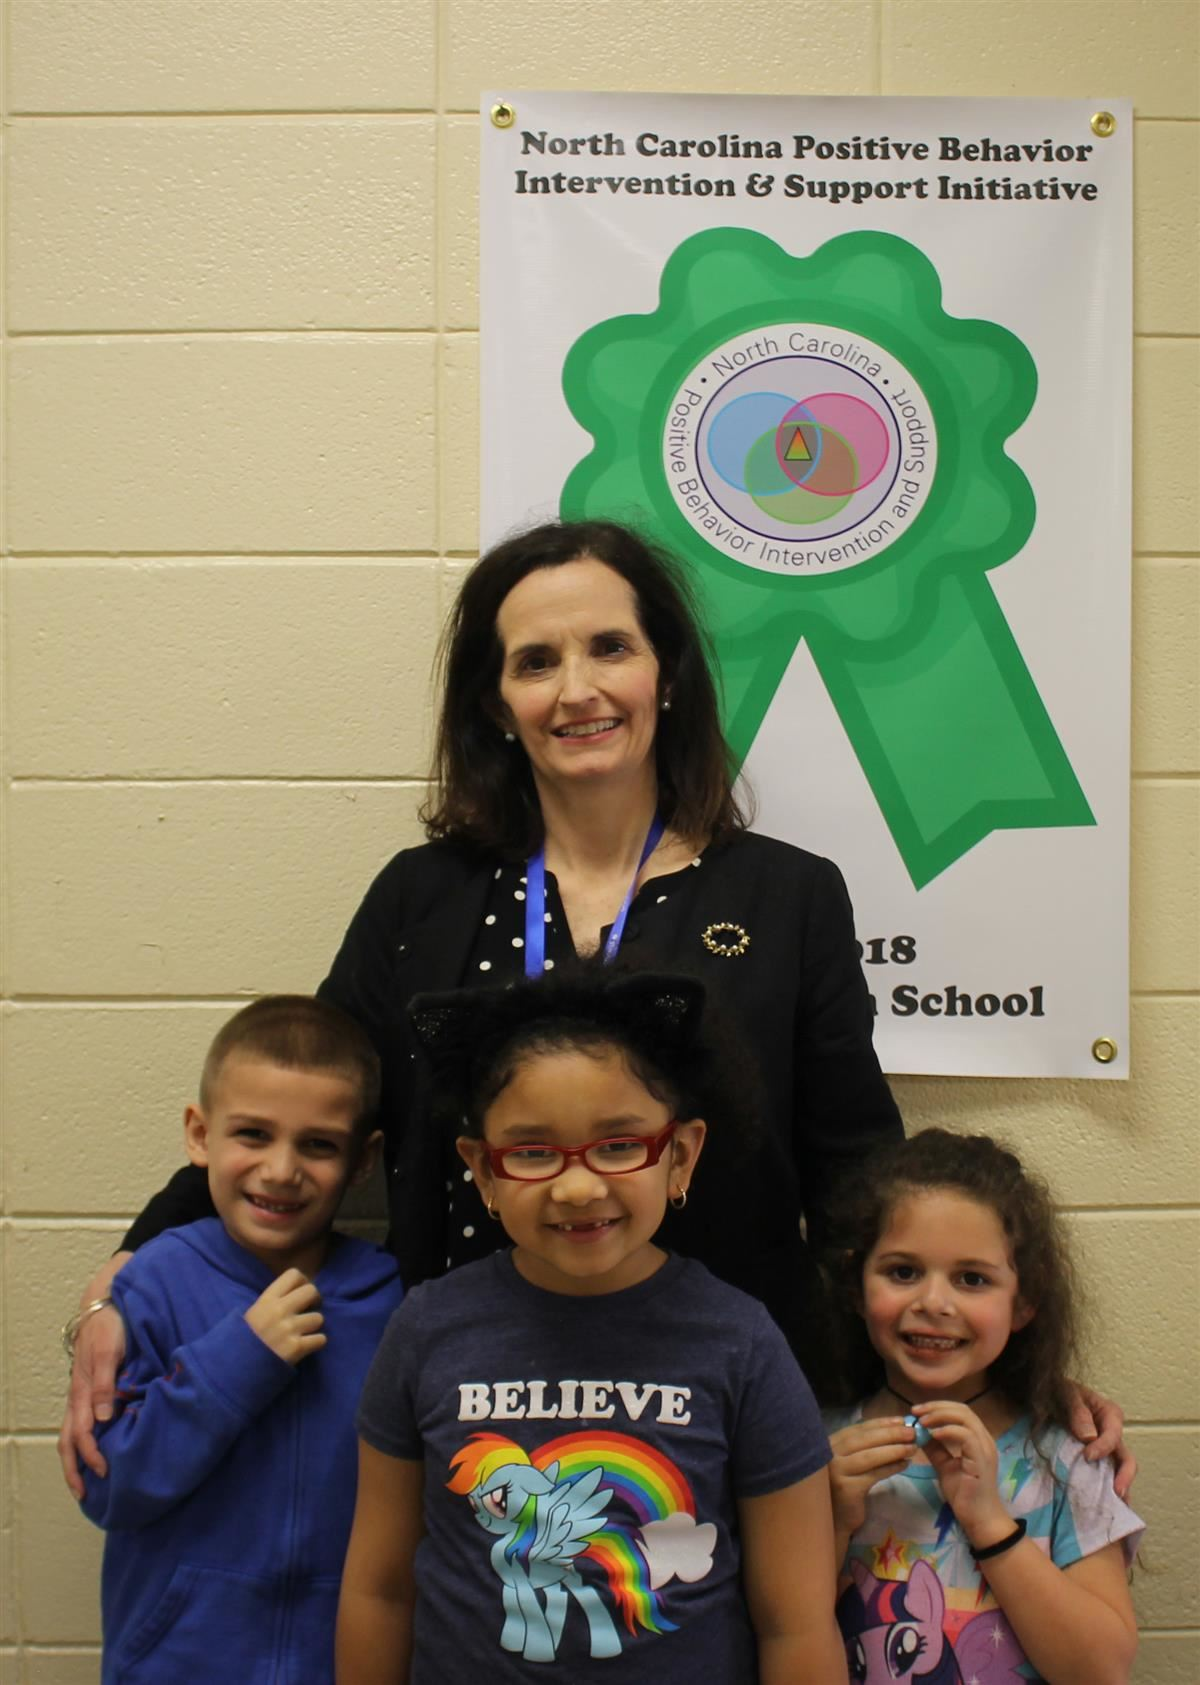 Sherwood Elementary earns Green Ribbon School recognition